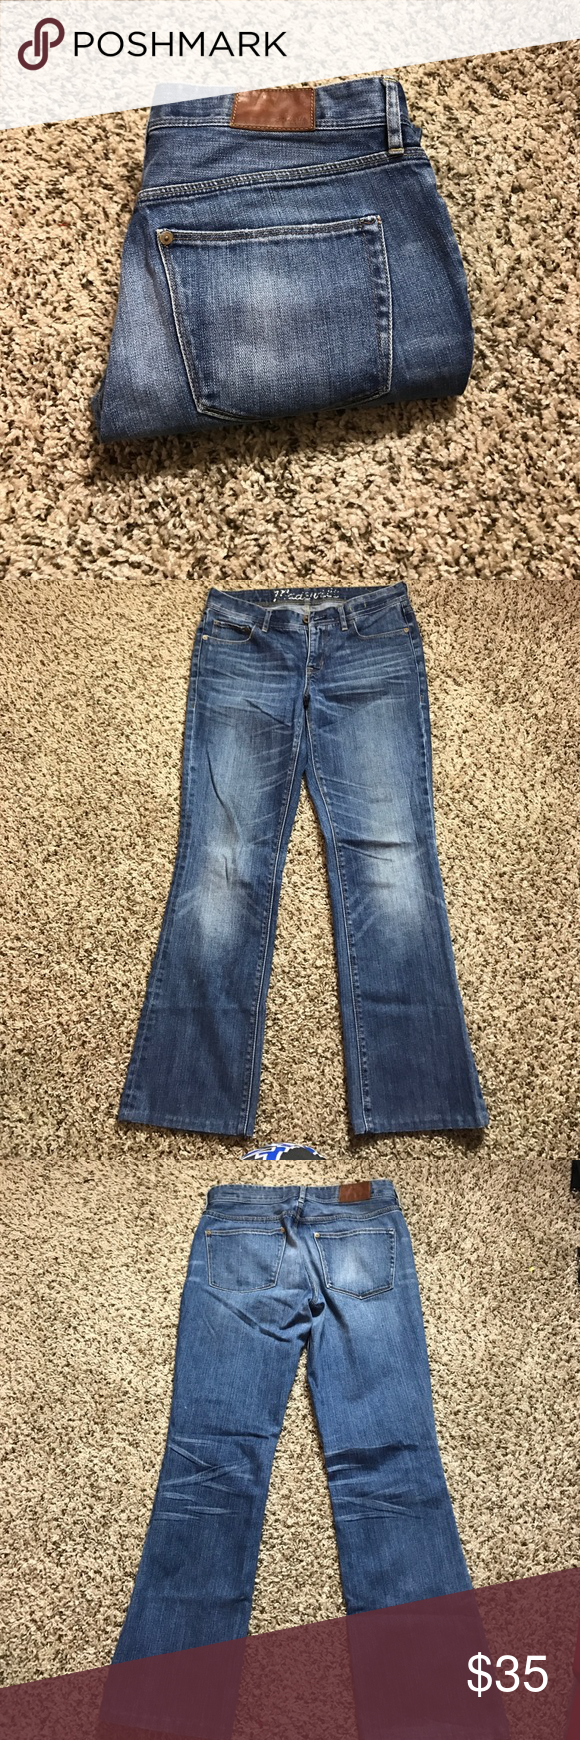 Madewell Bootcut jeans 👖 Size 29x32 Bootlegger Madewell Jeans Boot Cut